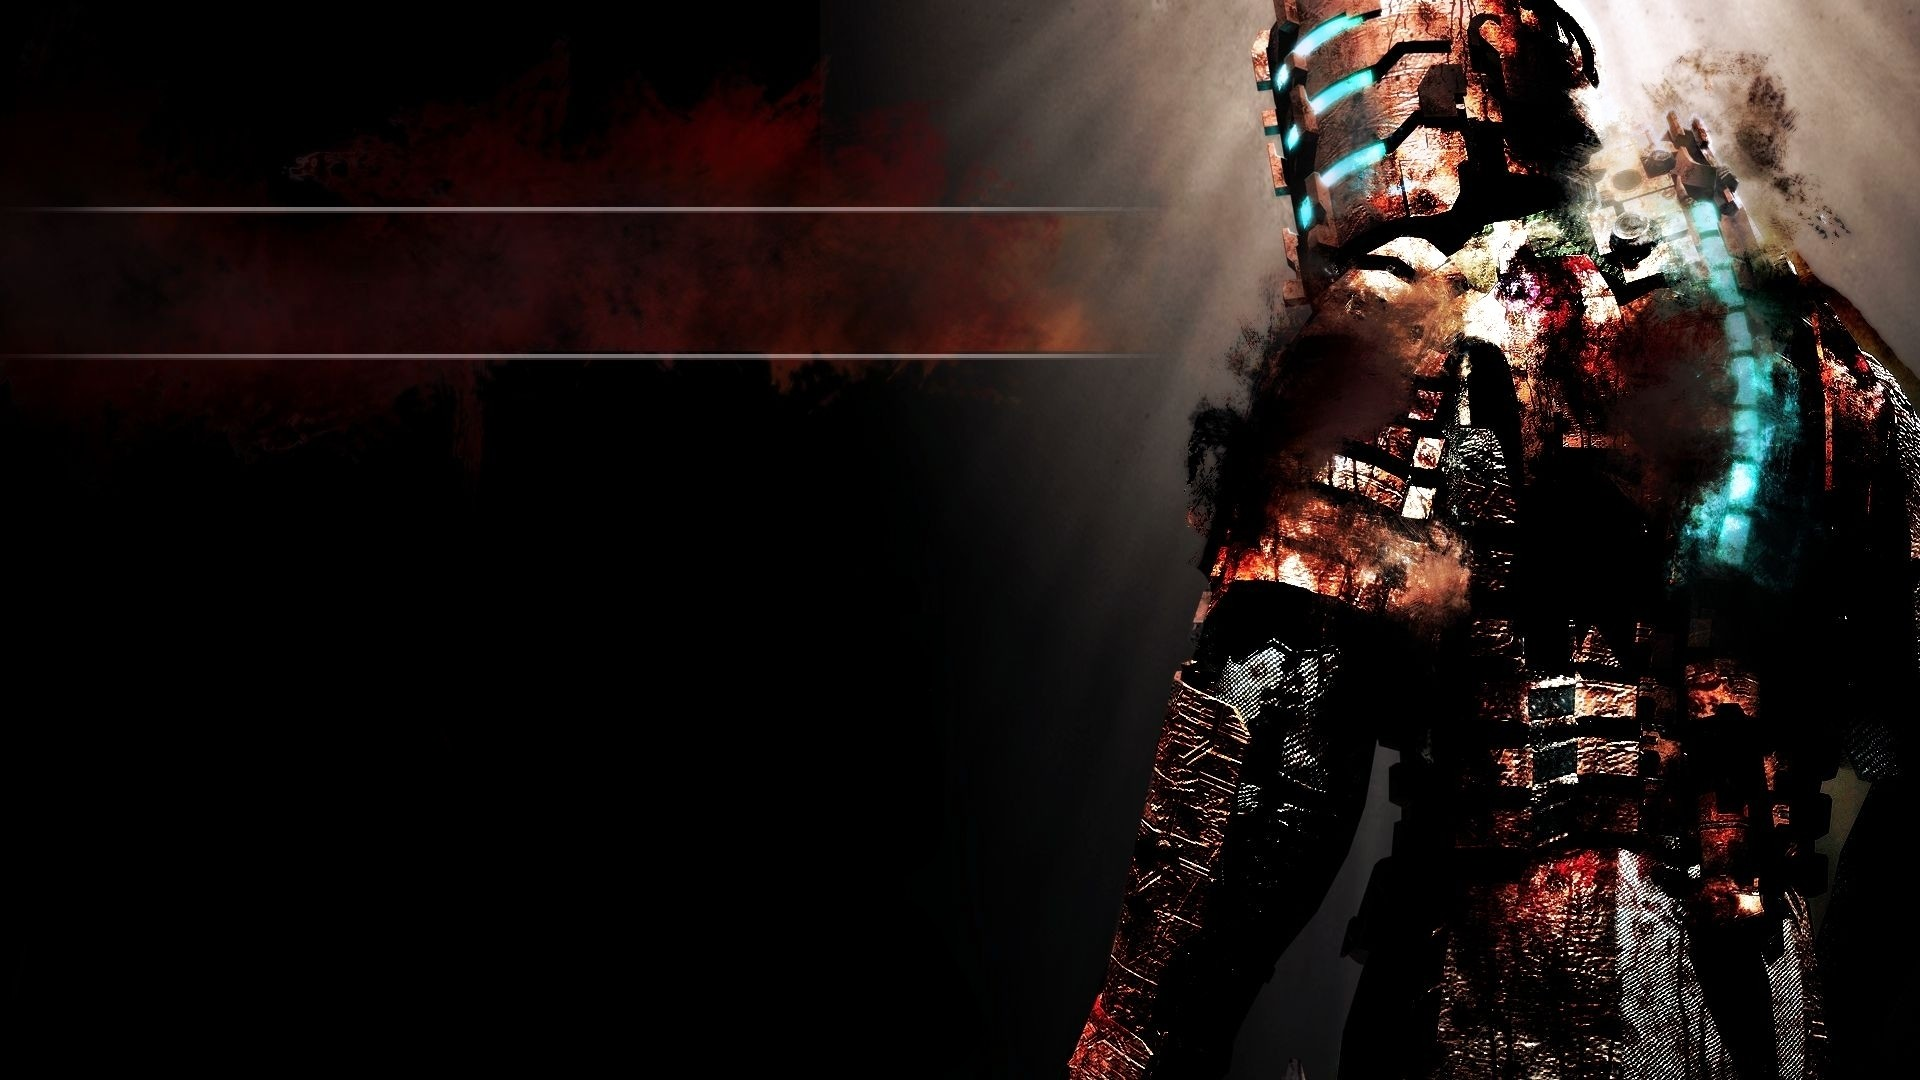 1920x1080 gore dead space badass game HD Wallpaper - Space & Planets (#